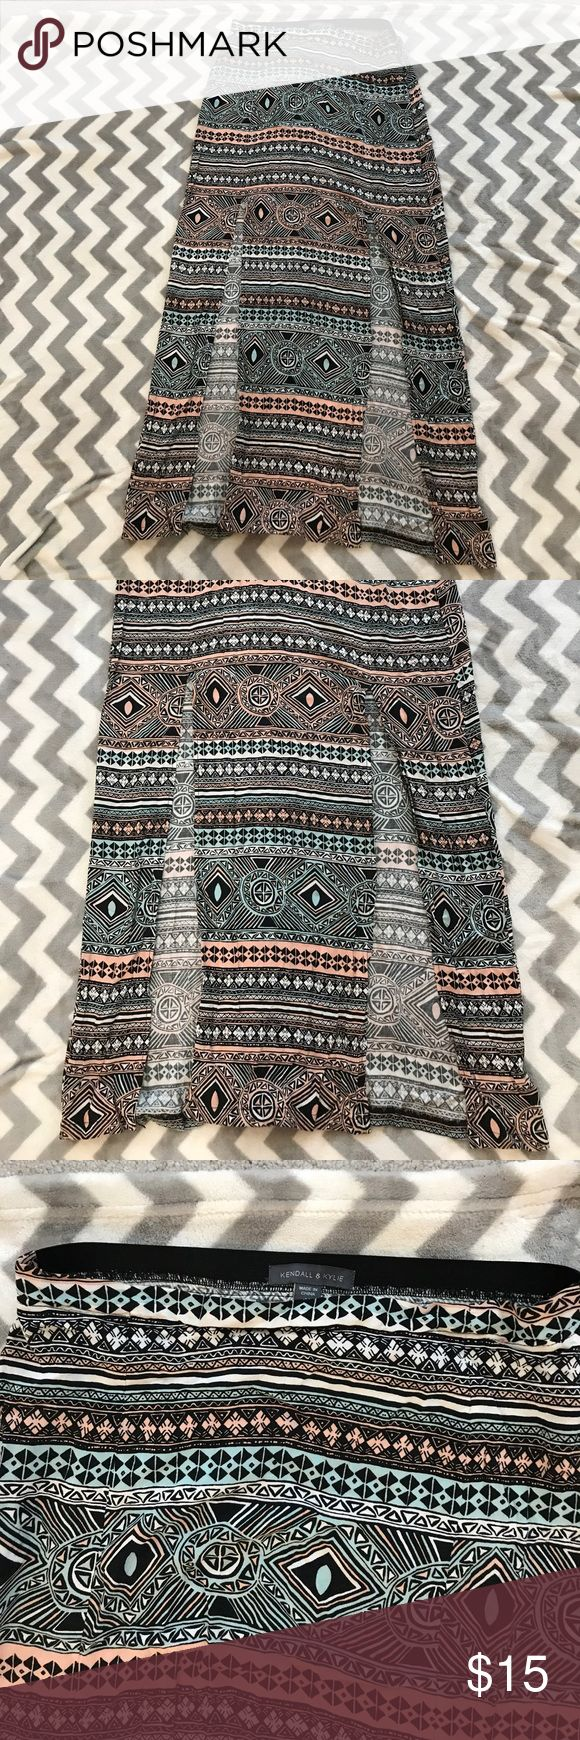 Kendall and Kylie tribal slit front maxi skirt Tribal maxi skirt with 2 front slits to show off your legs, flat front with elastic back waistband colors: peach, white, black, and aqua Kendall & Kylie Skirts Maxi